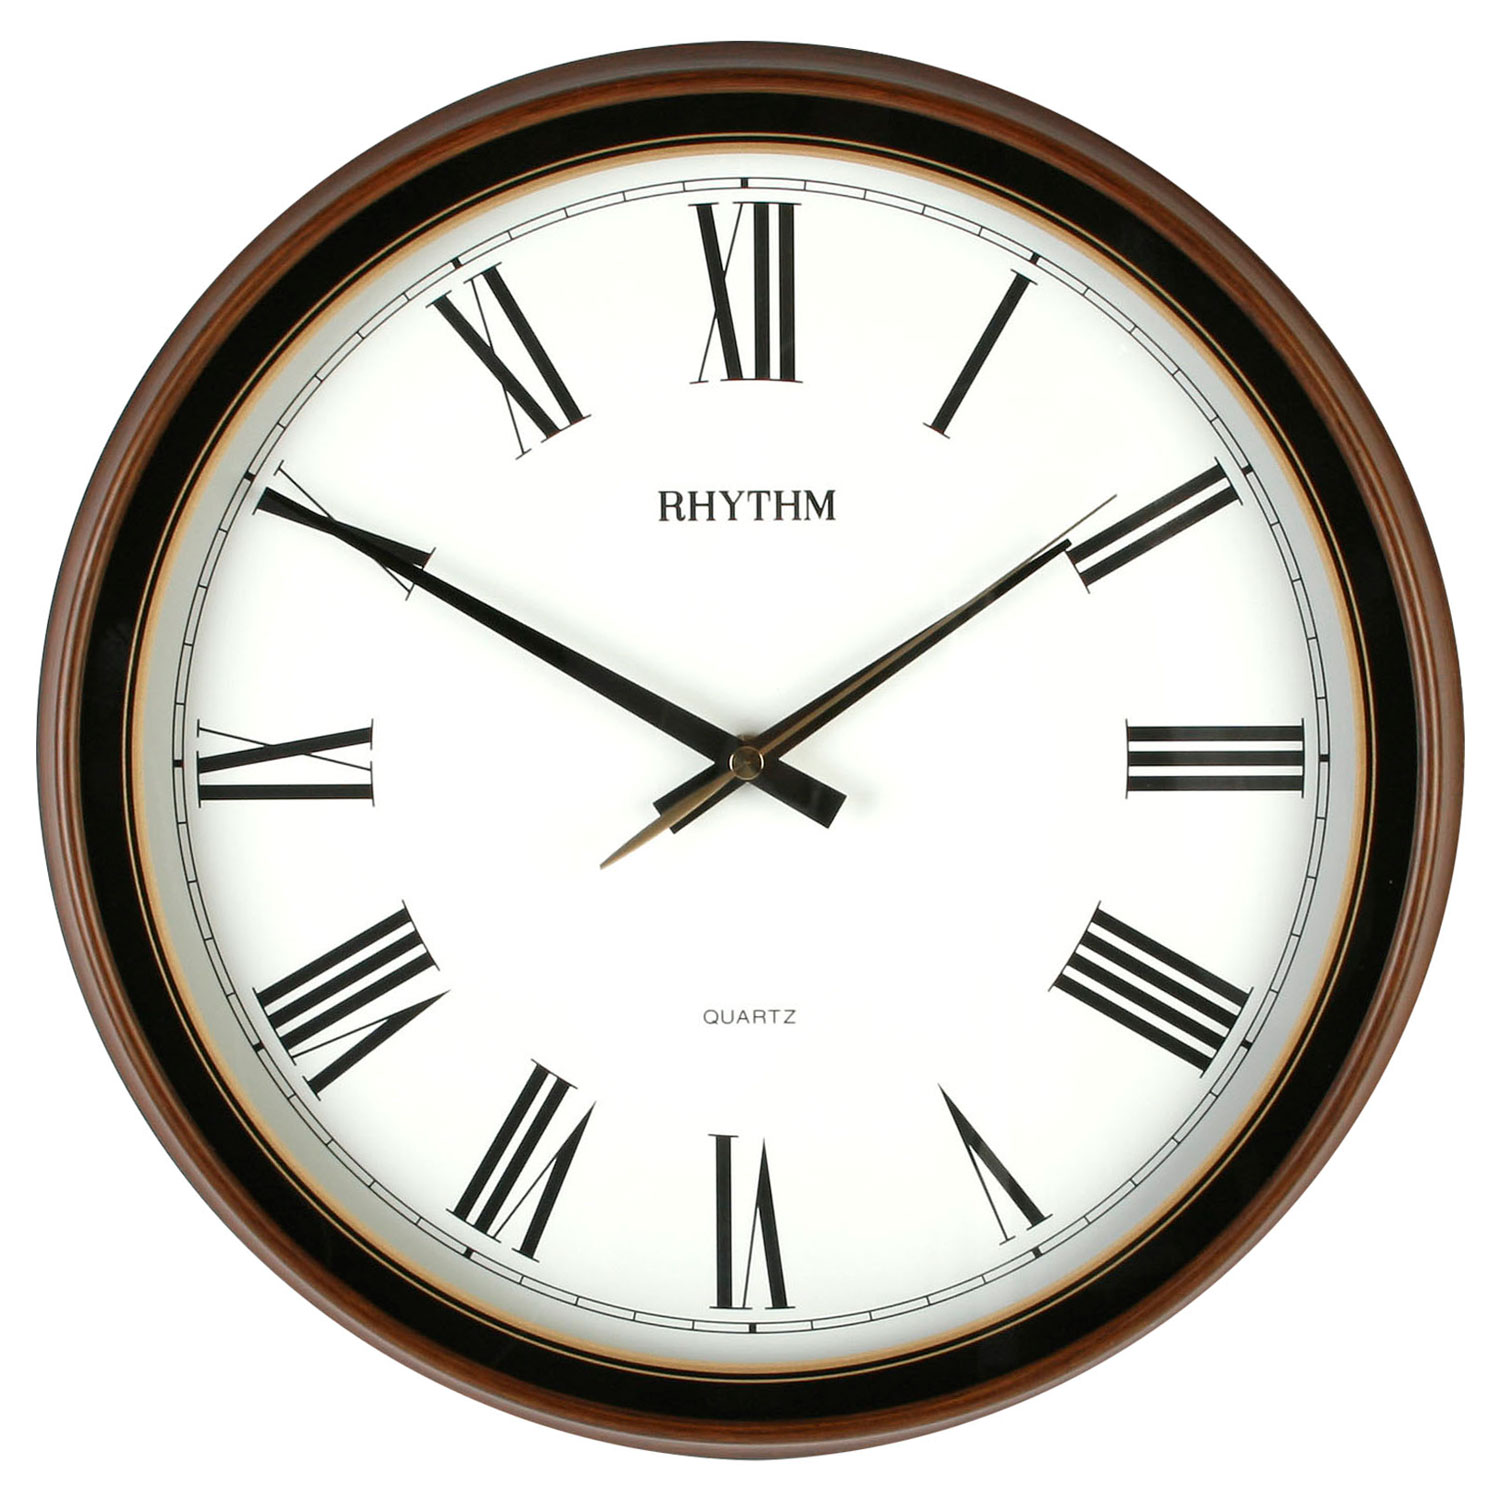 Traditional Rhythm Wall Clock Silent No Ticking In Woodgrain Kitchen Bedroom